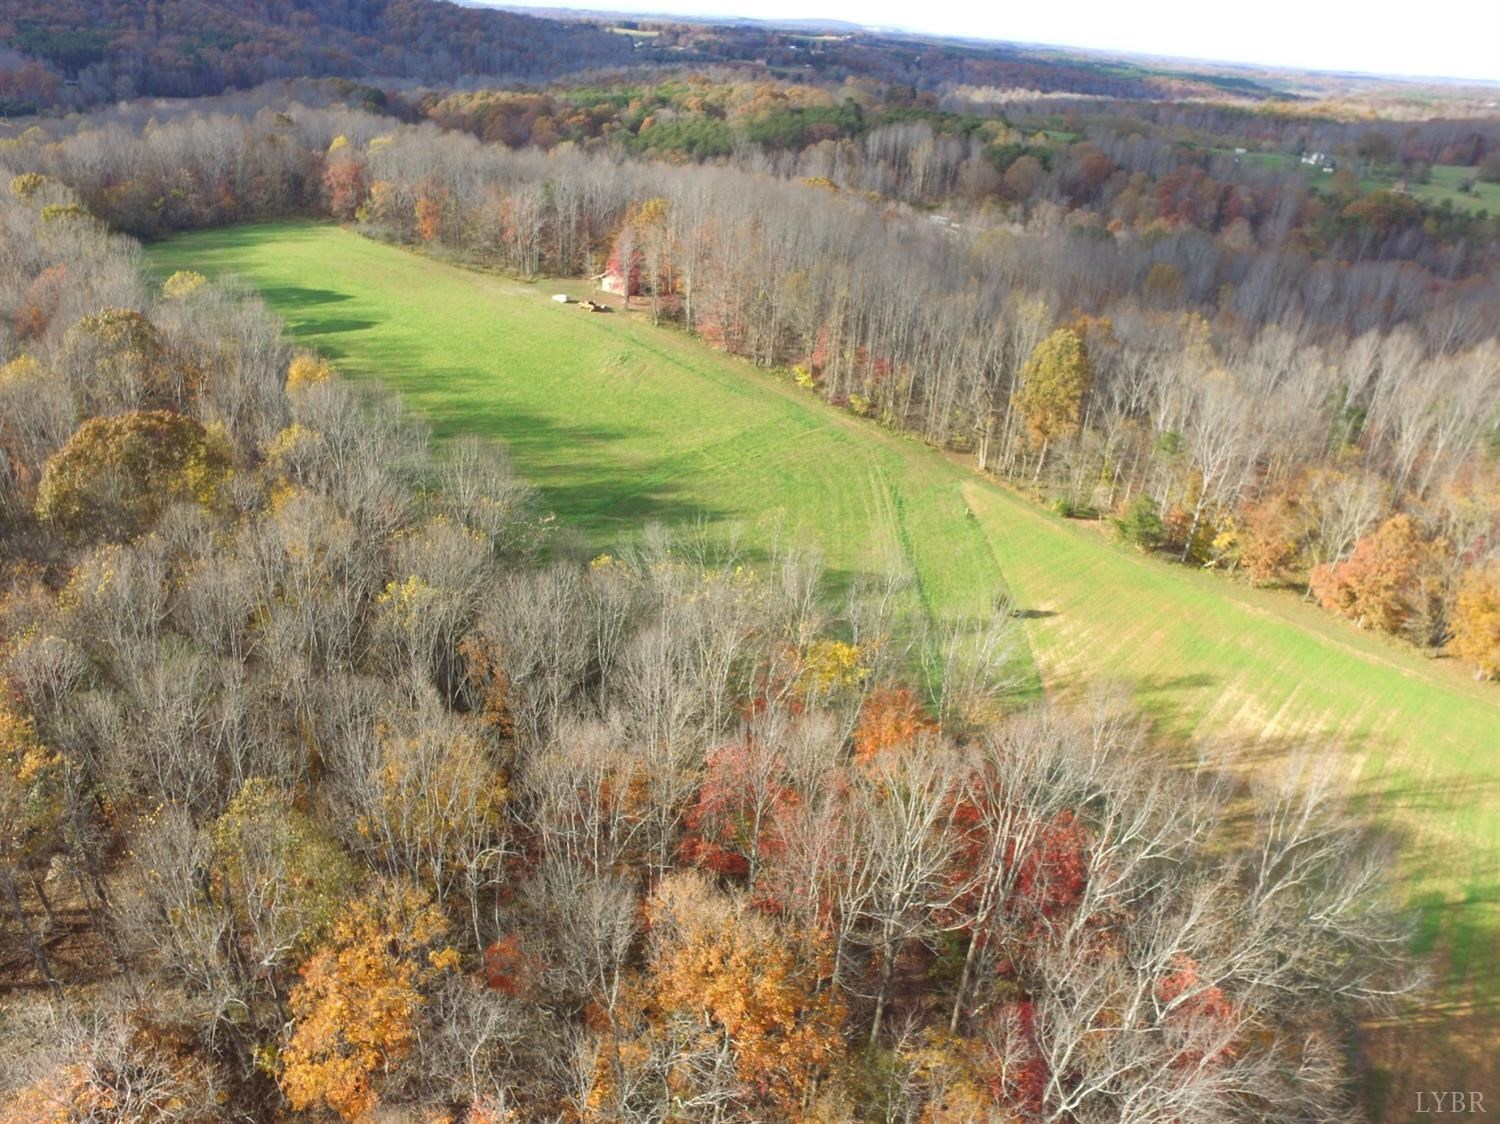 Nicely laying Farm Land in Callands, VA with Cabin